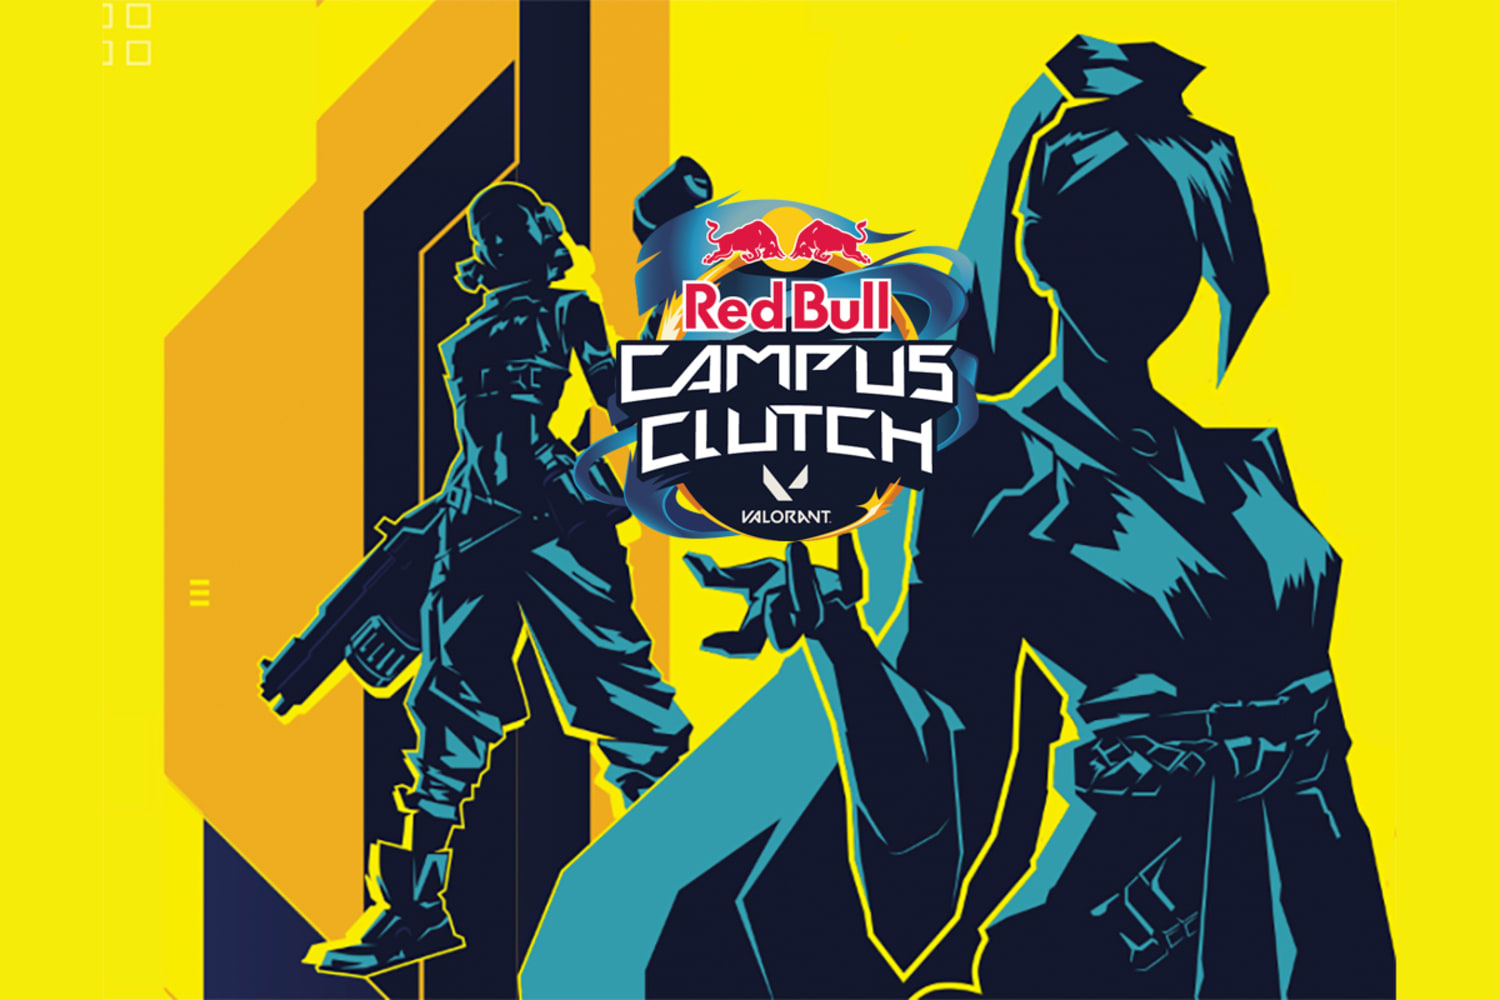 Valorant fan? Get ready to load out for Red Bull Campus Clutch - Red Bull Australia